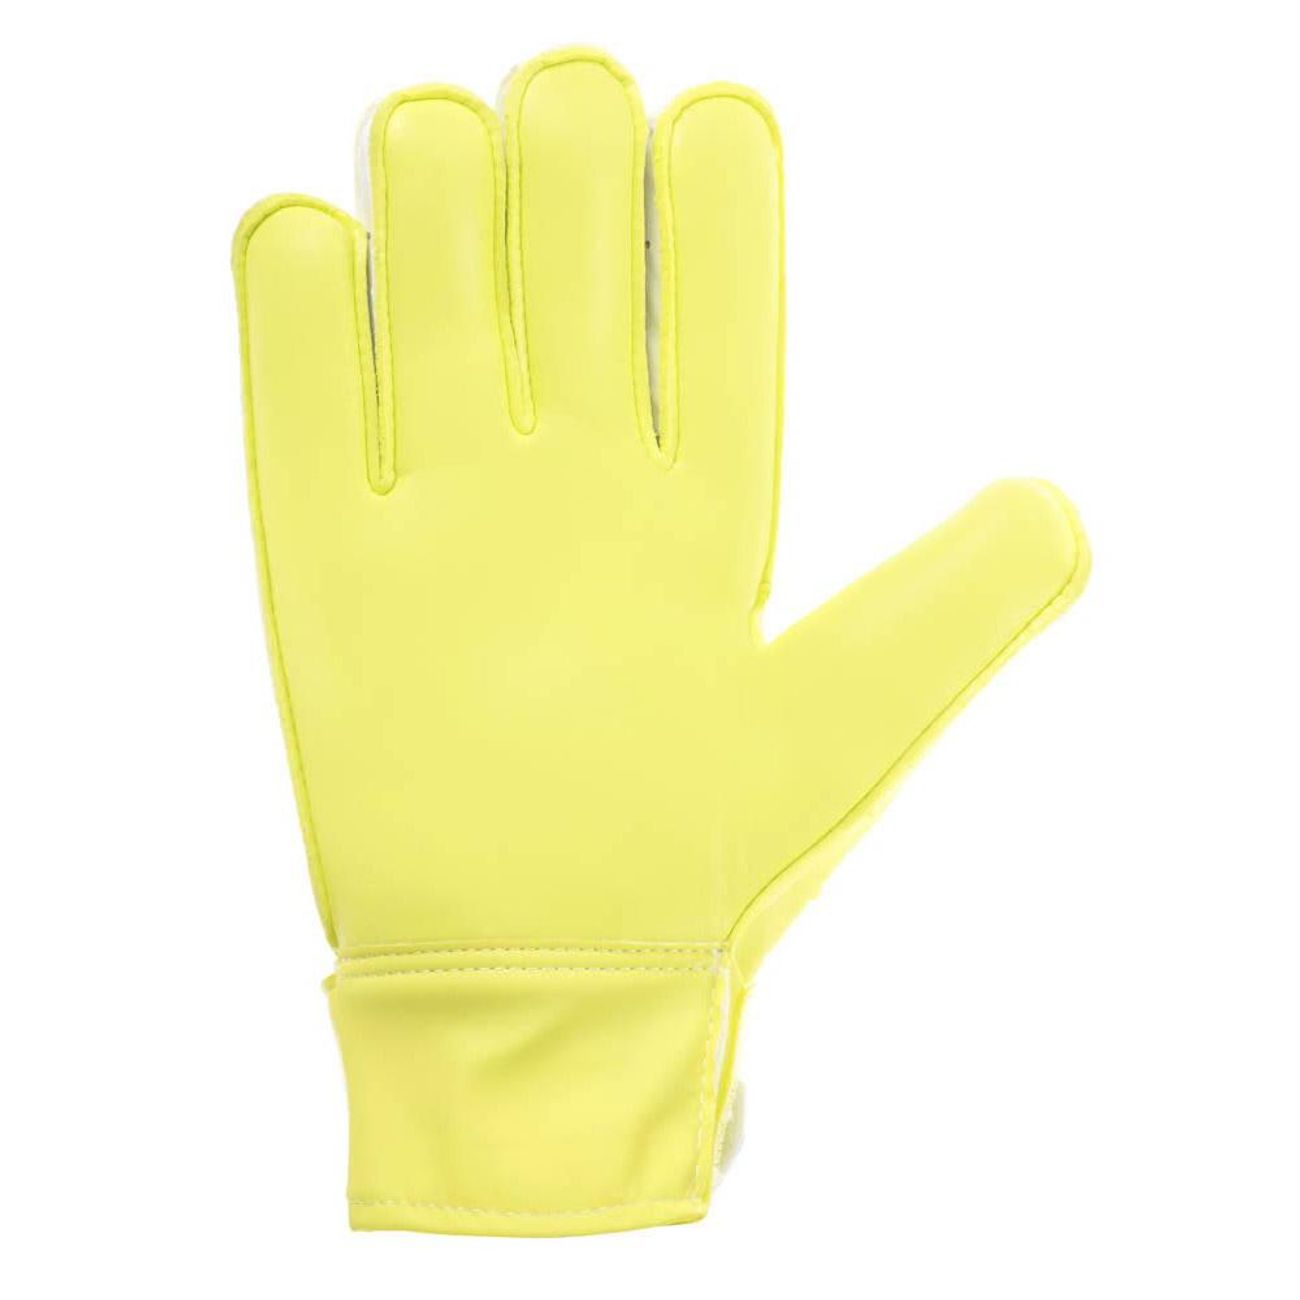 Eliminator Uhlsport Soft Gants Football Starter Adulte qzpUMSGV